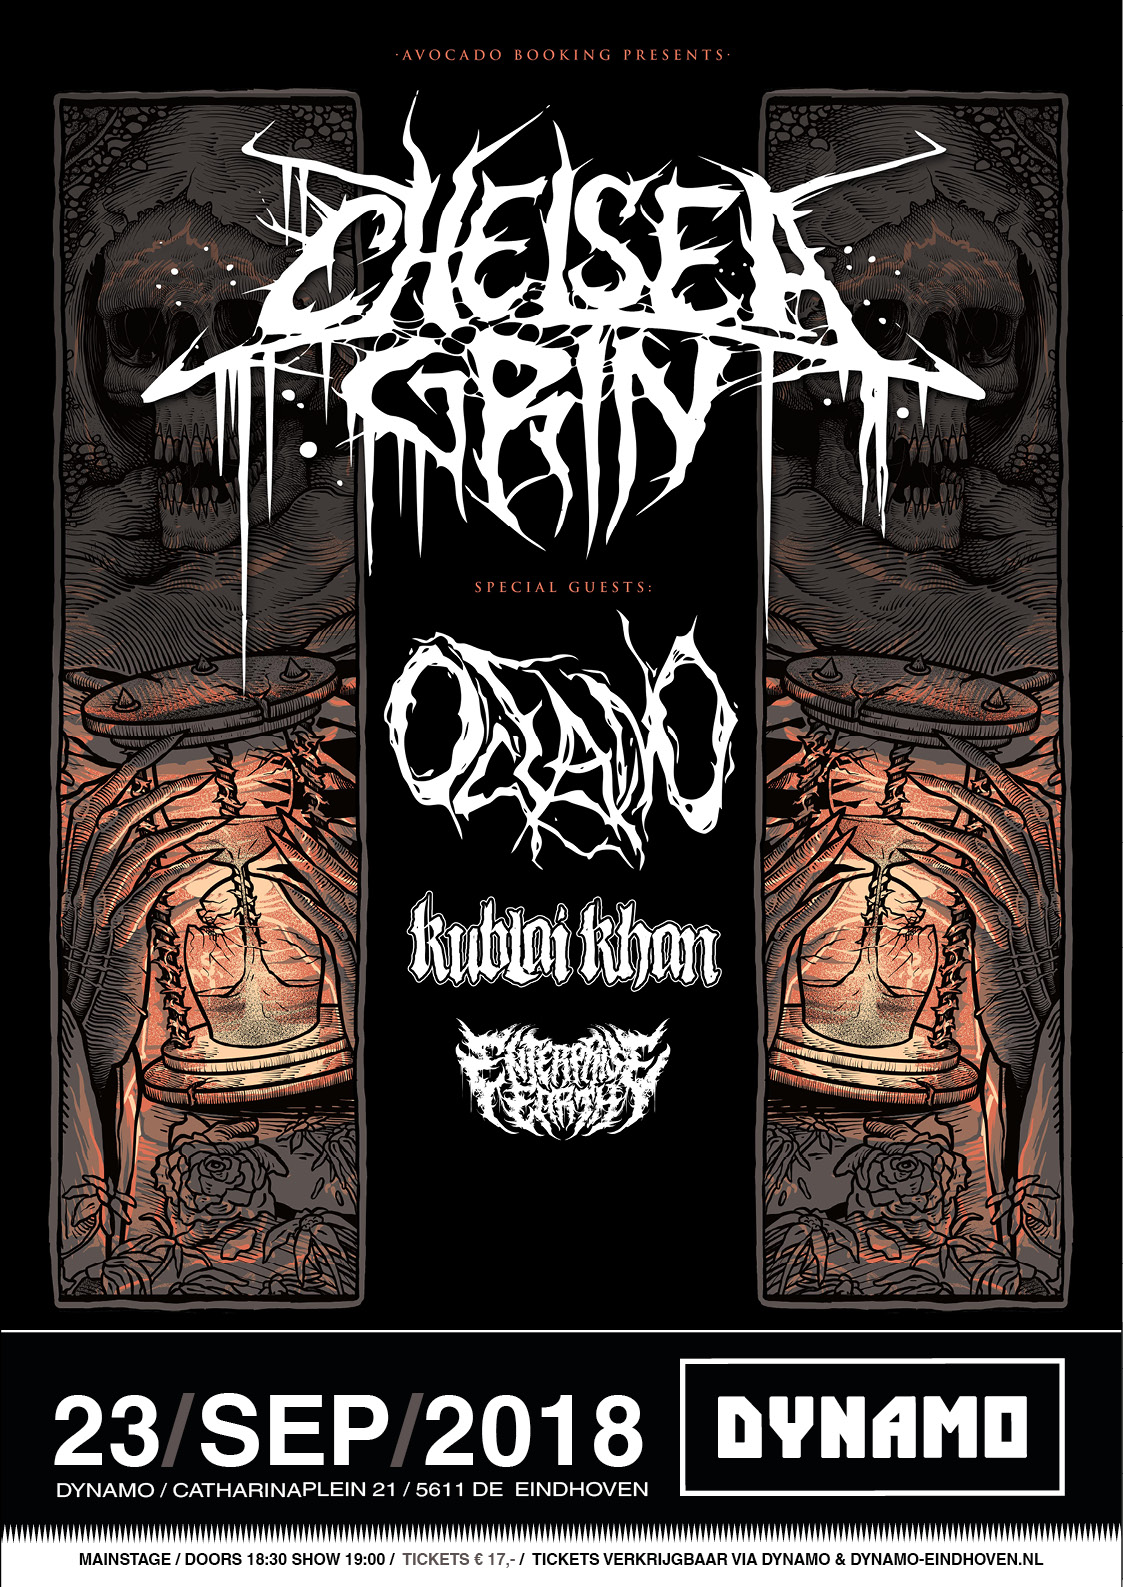 Chelsea Grin flyer @ Dynamo Eindhoven